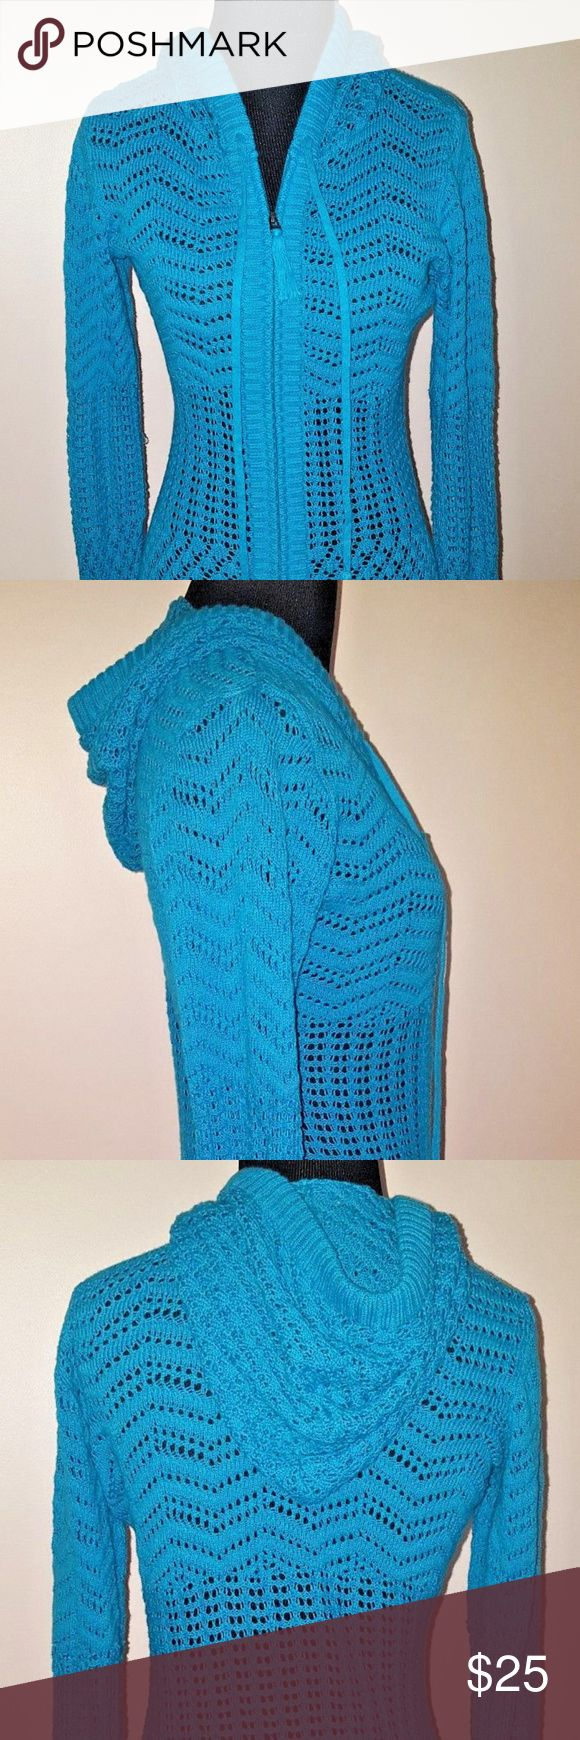 """Athleta Shoreline Hoodie Open Knit Full Zip XS Athleta Shoreline Hoodie Open Knit Full Zip Sweater Bali Blue Lightweight Sz XS  The ultimate breezy beach cover up hoodie in soft cotton crochet.  Right sleeve has pulled thread.  Bust 35 1/2"""" Sleeve 35"""" Length 26"""" Athleta Tops Sweatshirts & Hoodies"""